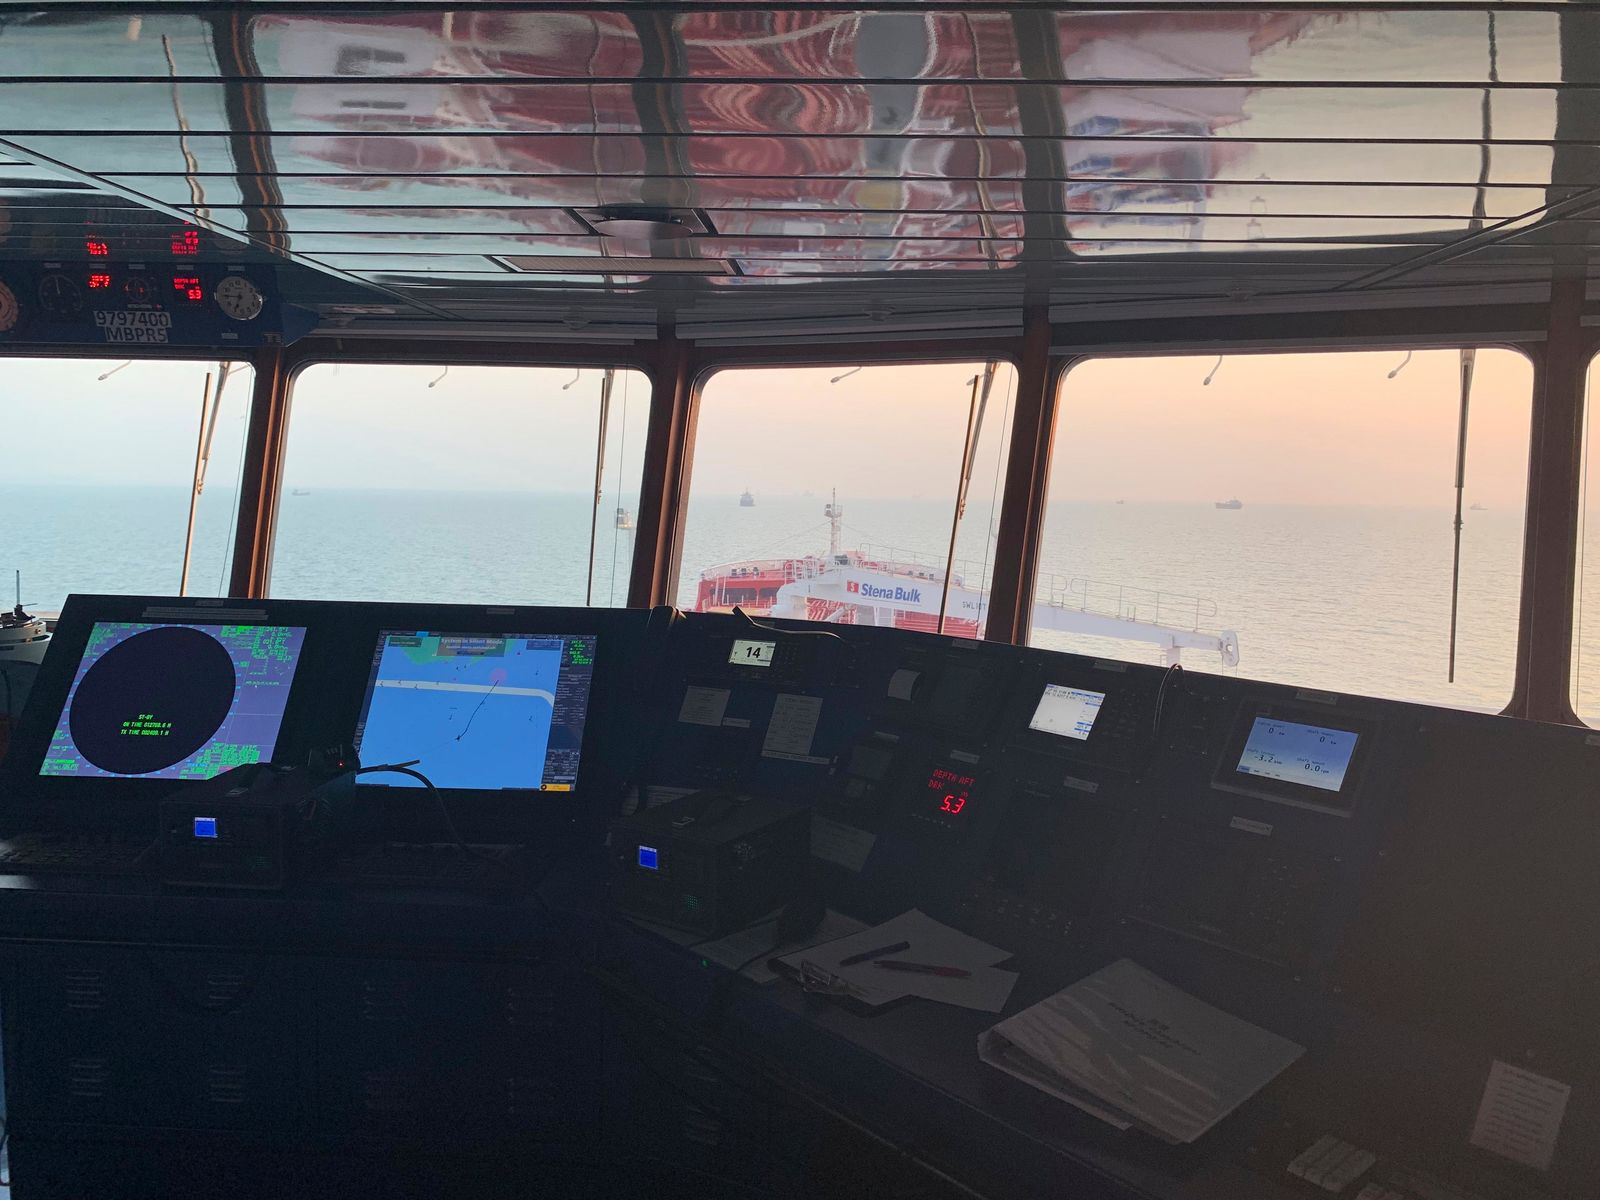 This Sunday, July 21, 2019 photo, shows the cockpit of a British-flagged oil tanker Stena Impero which was seized in the Strait of Hormuz on Friday by the Iran's Revolutionary Guard, in the Iranian port of Bandar Abbas. Global stock markets were subdued Monday while the price of oil climbed as tensions in the Persian Gulf escalated after Iran's seizure of a British oil tanker on Friday. (Morteza Akhoondi/Mehr News Agency via AP)